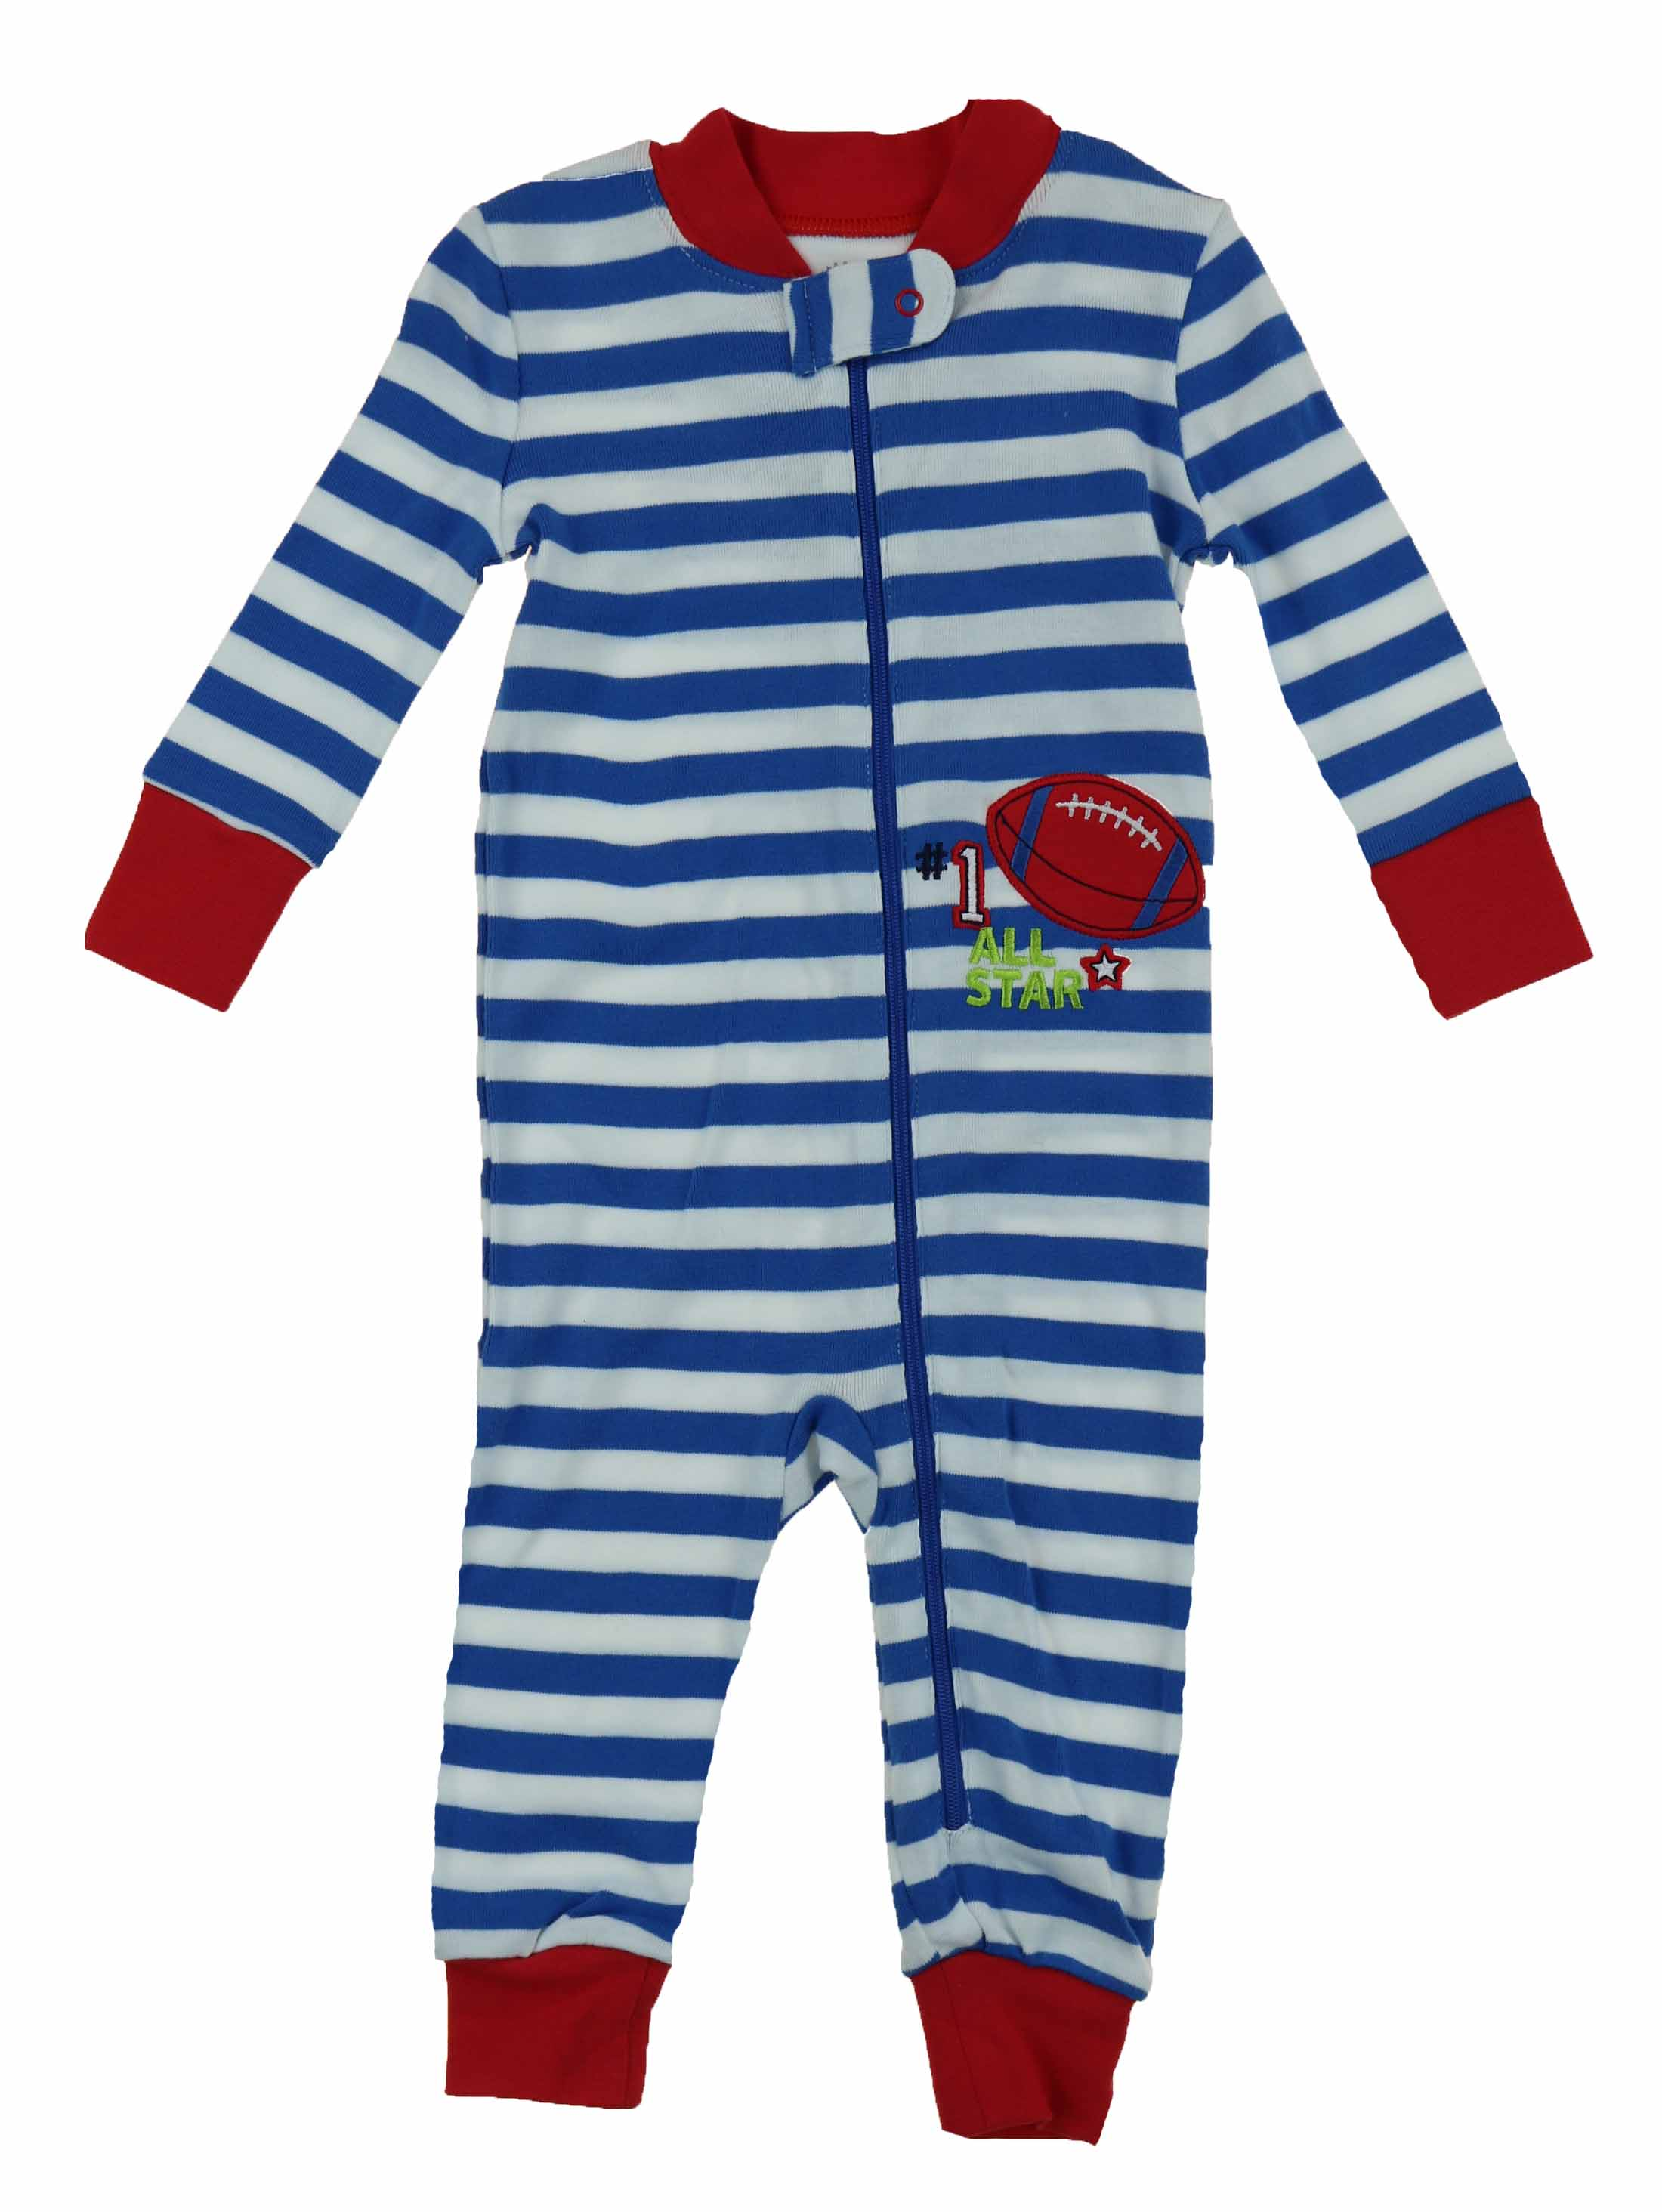 Little Me Boys 1 Piece Long Sleep Sleeper Full Zip or Snap Footie Pajama (12M, (02)Blue/White Stripe)